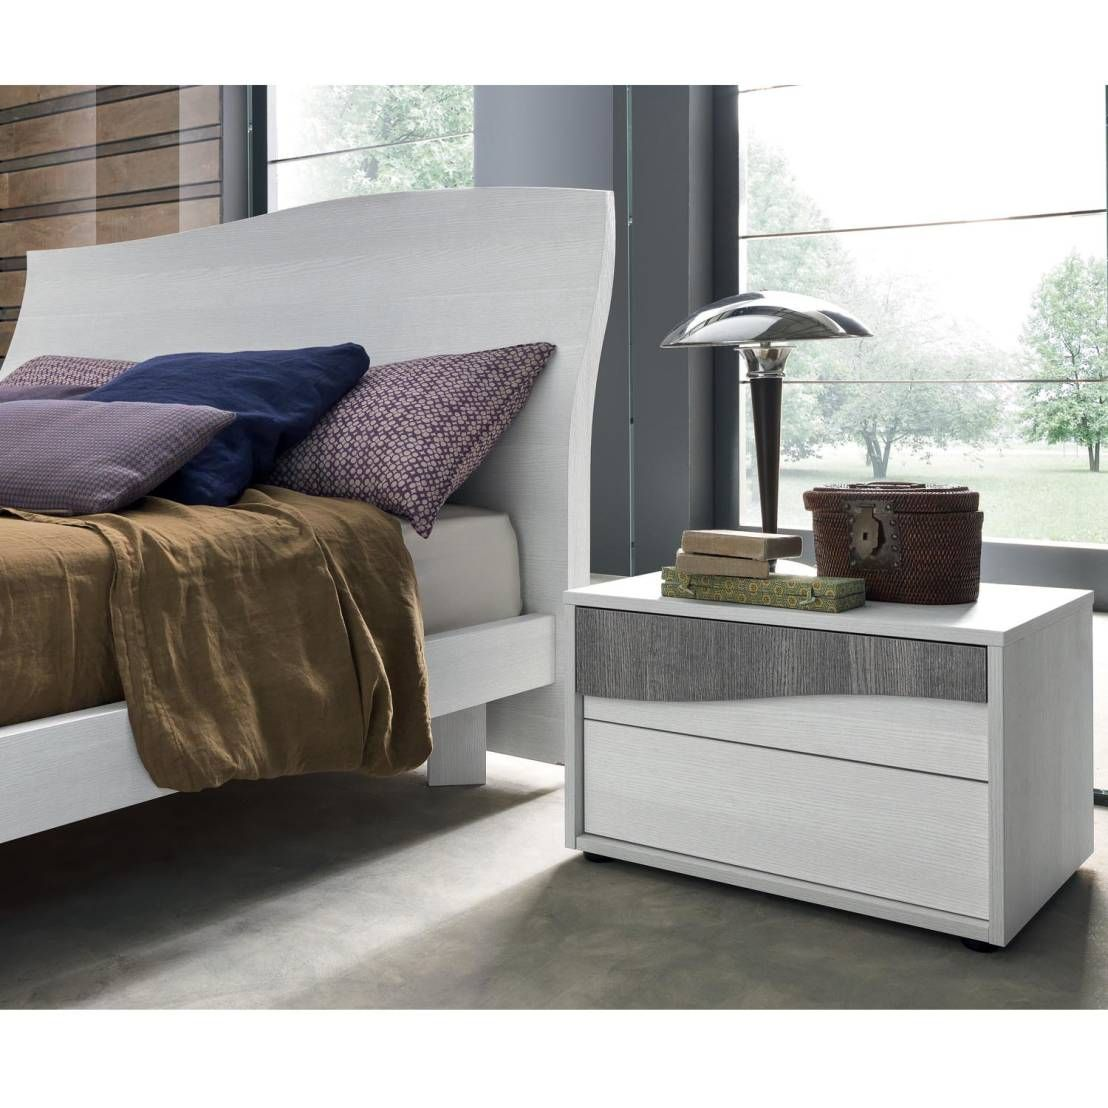 Seven stylish bedside tables and nightstands for your